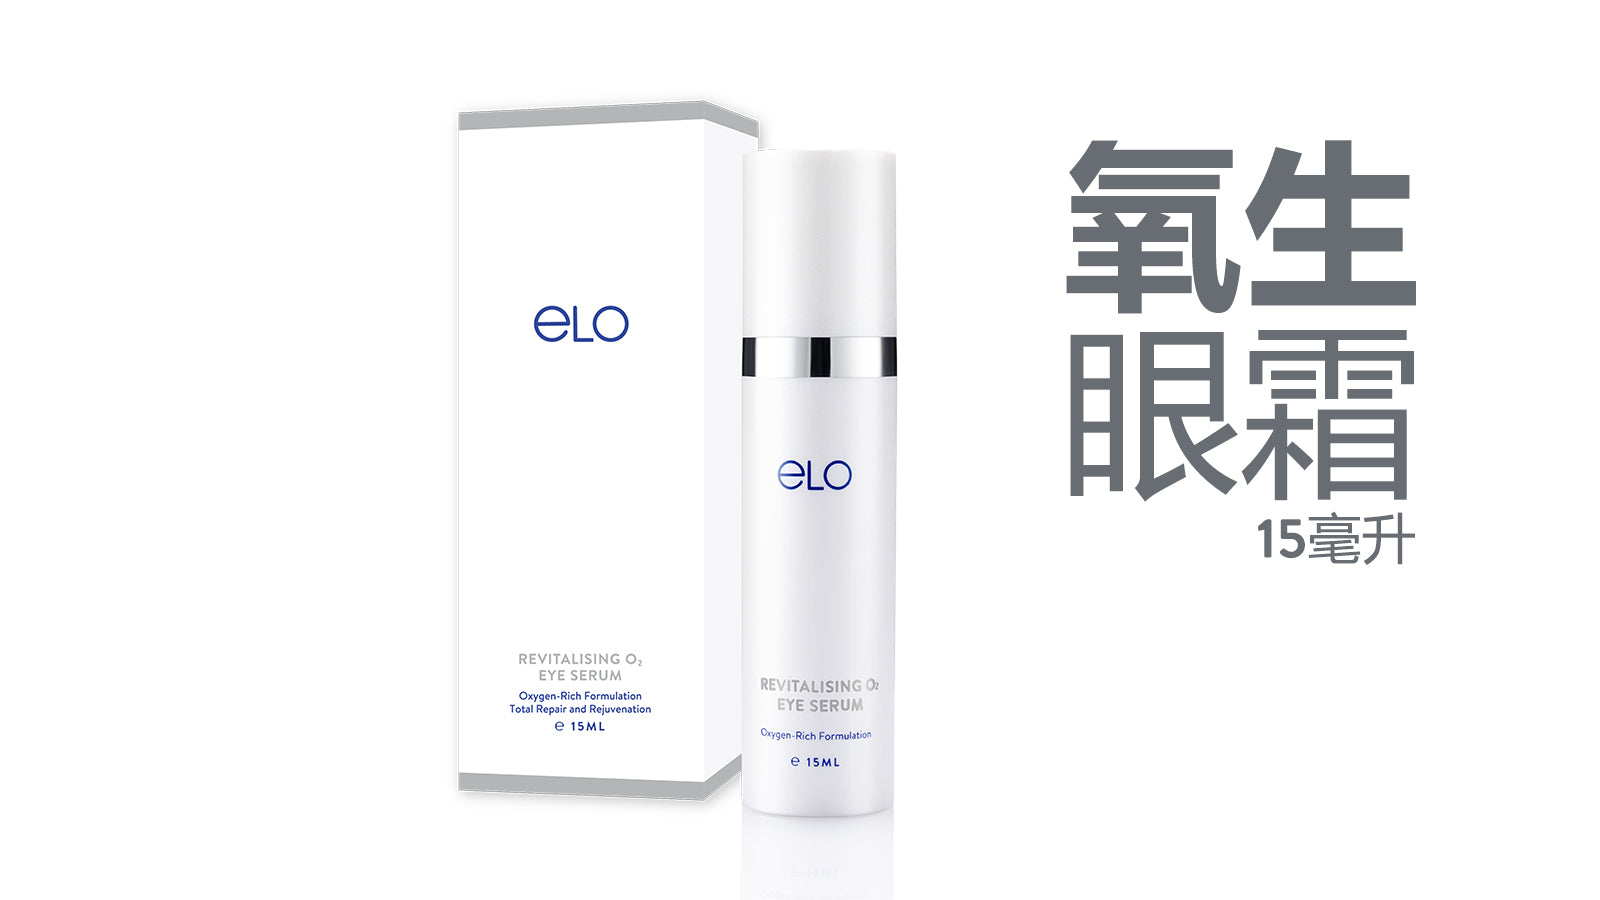 ELO Revitalising O₂ Eye Serum (Single Tube) (15 ml)